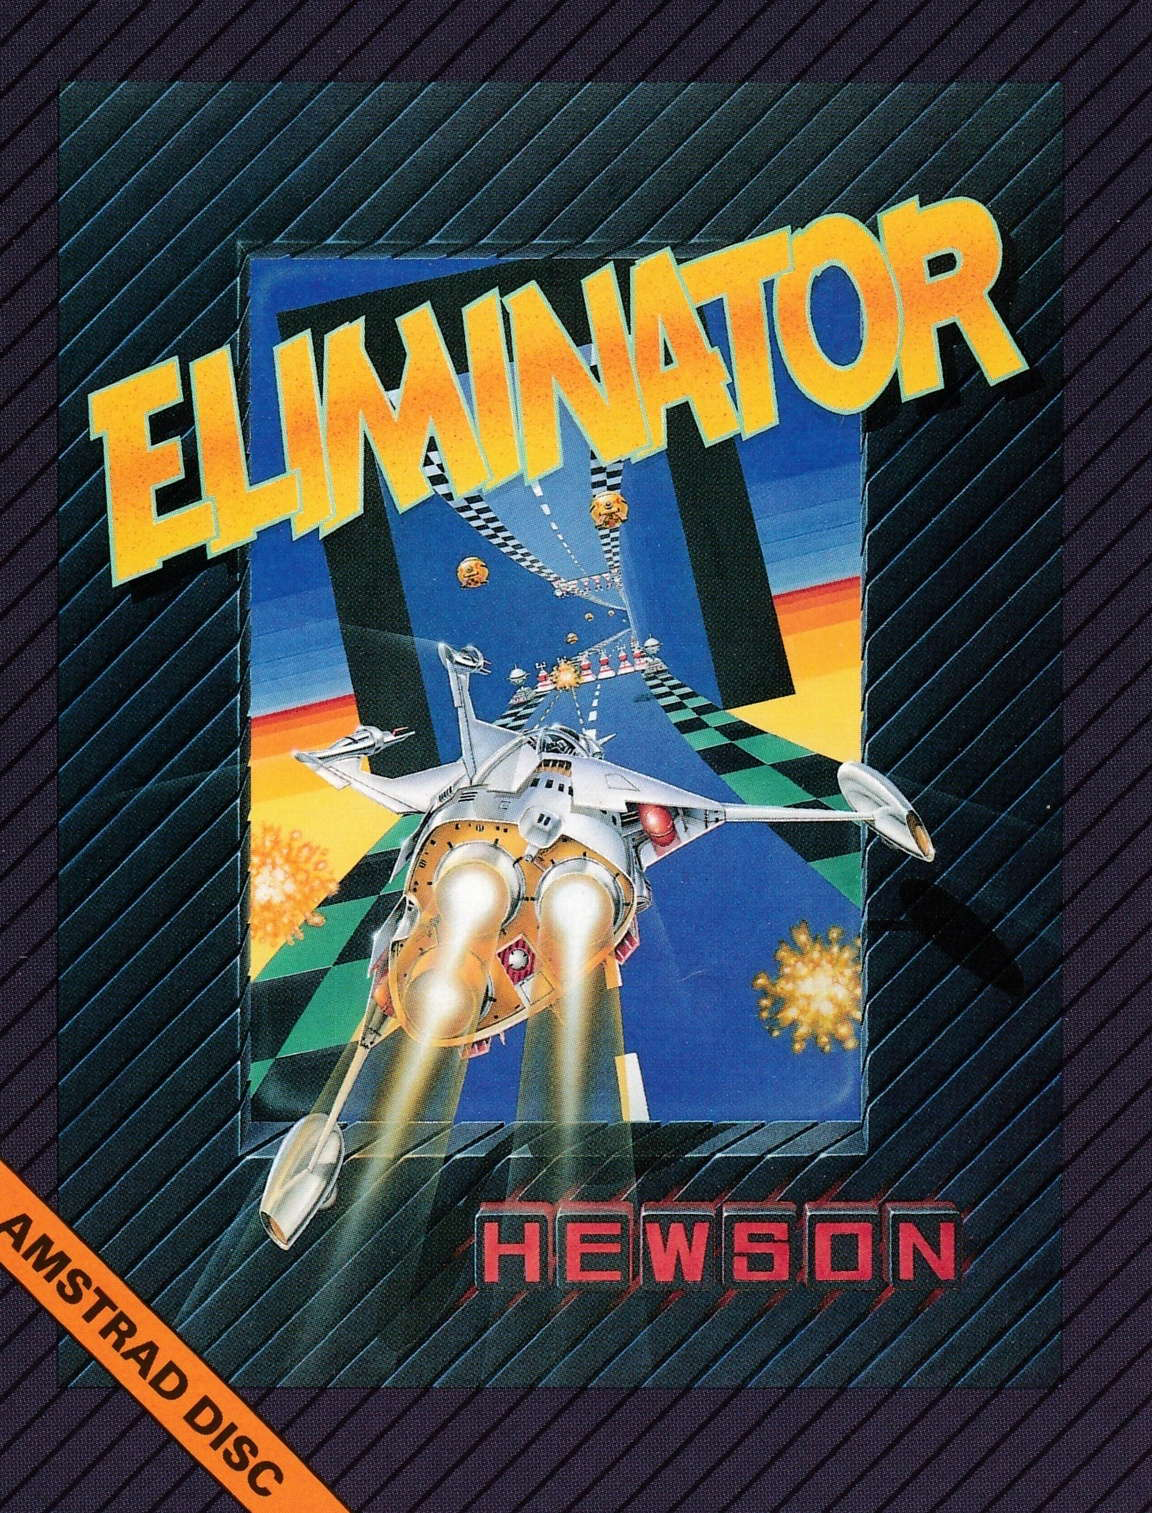 cover of the Amstrad CPC game Eliminator  by GameBase CPC